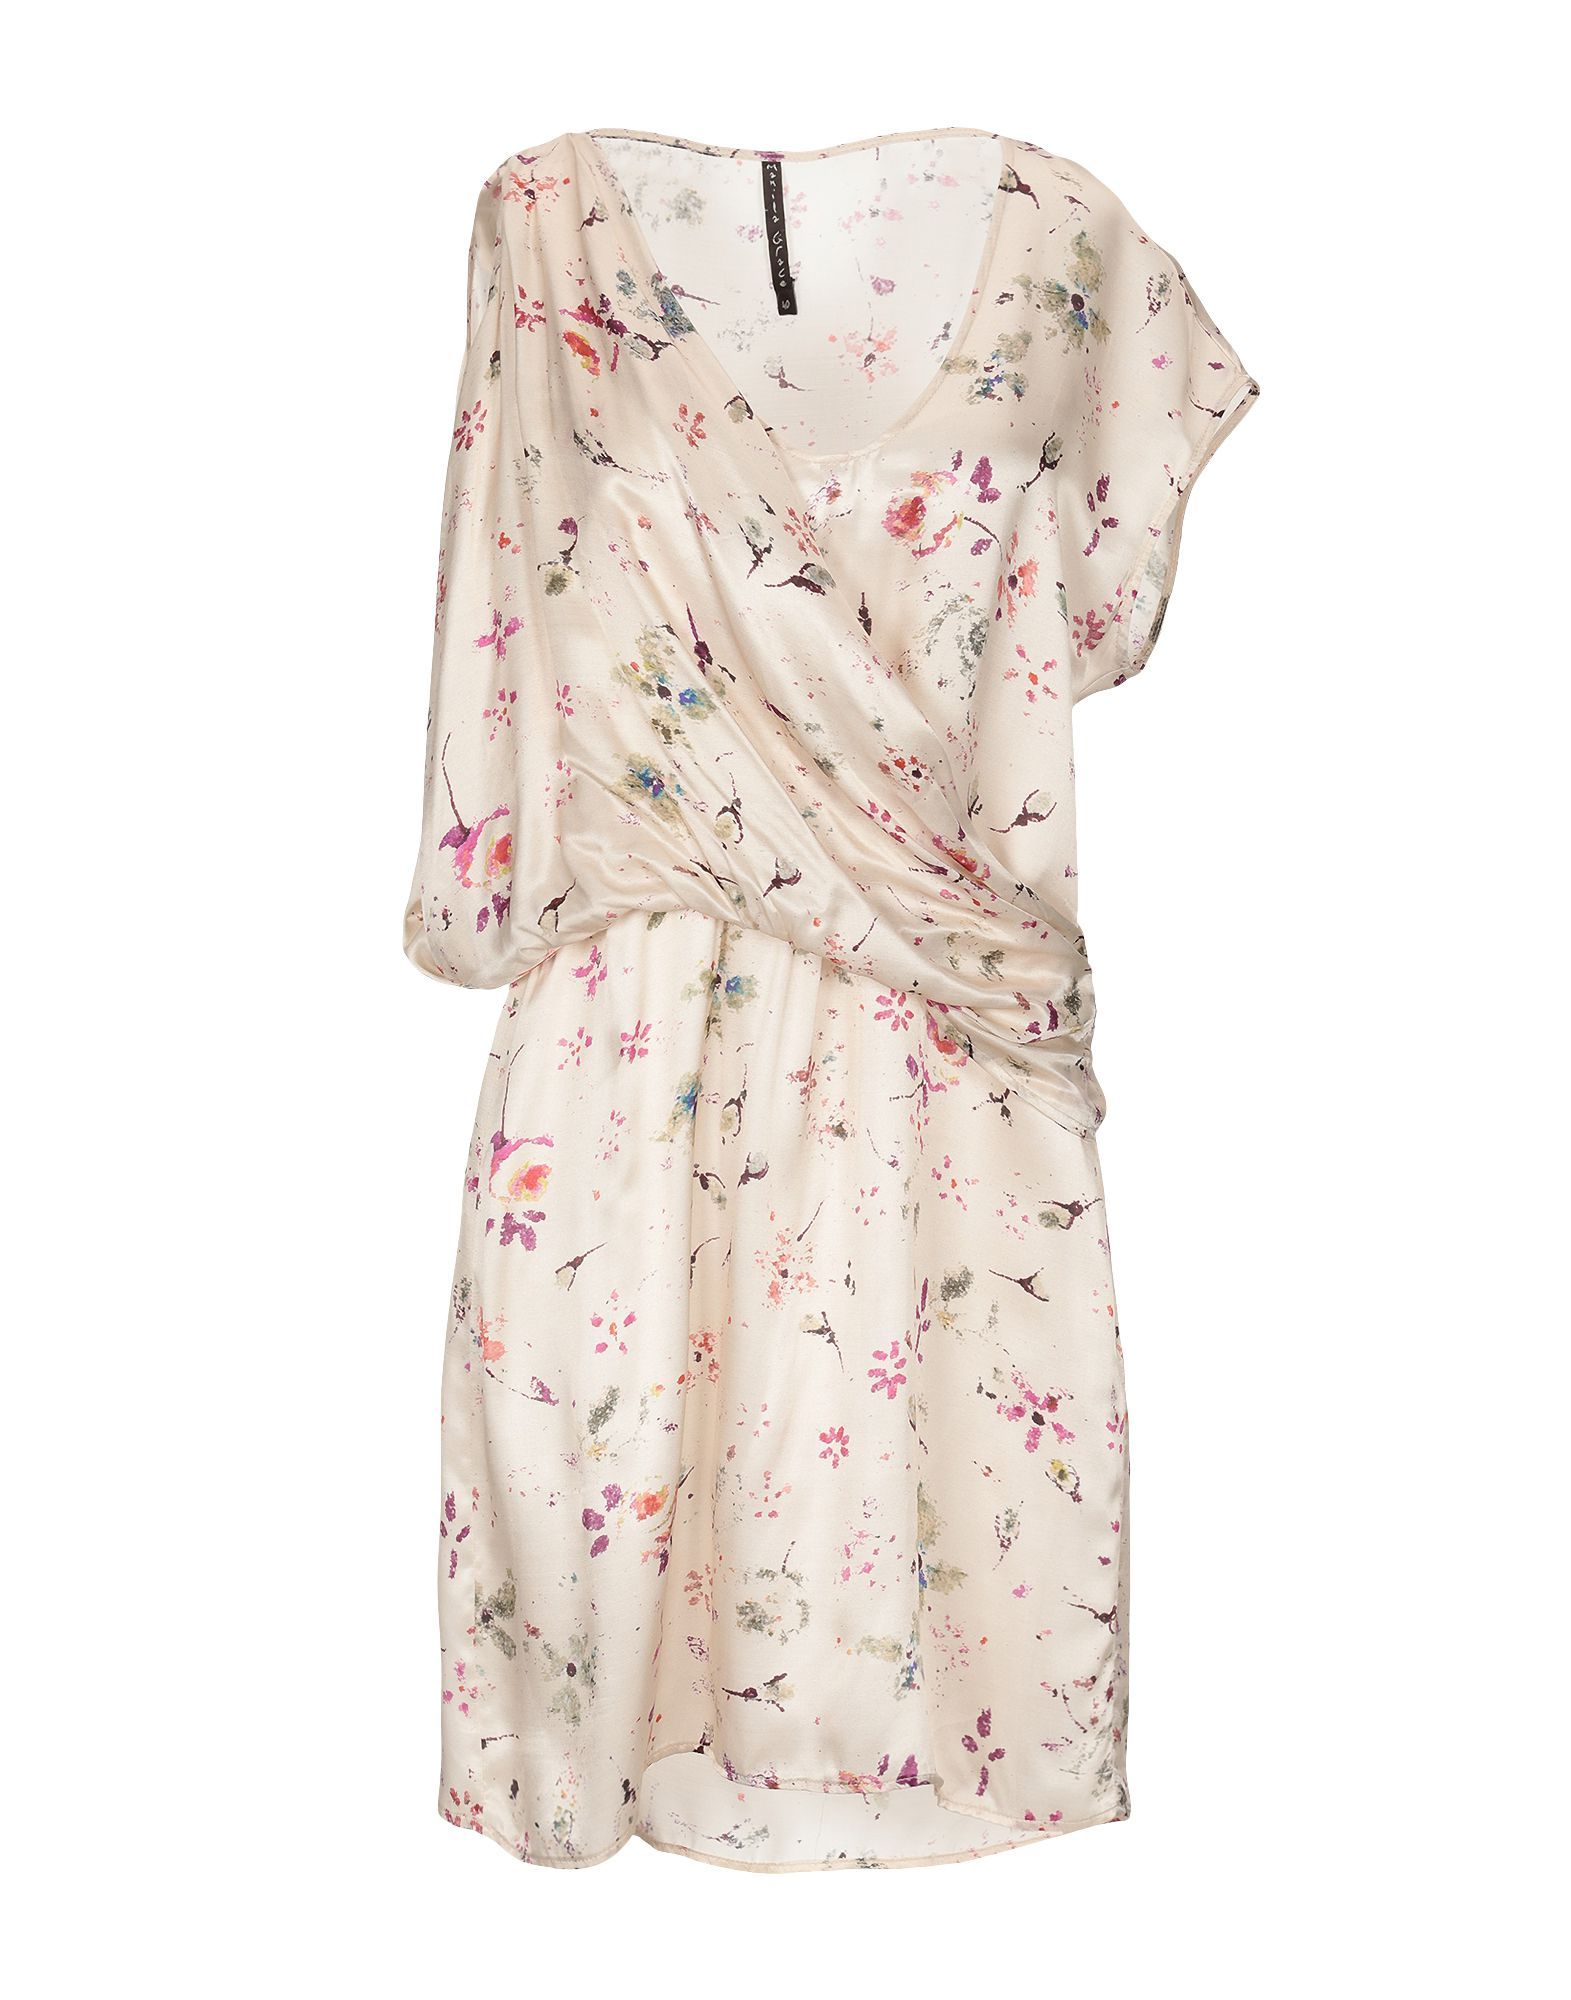 Manila Grace Ivory Print Satin Dress